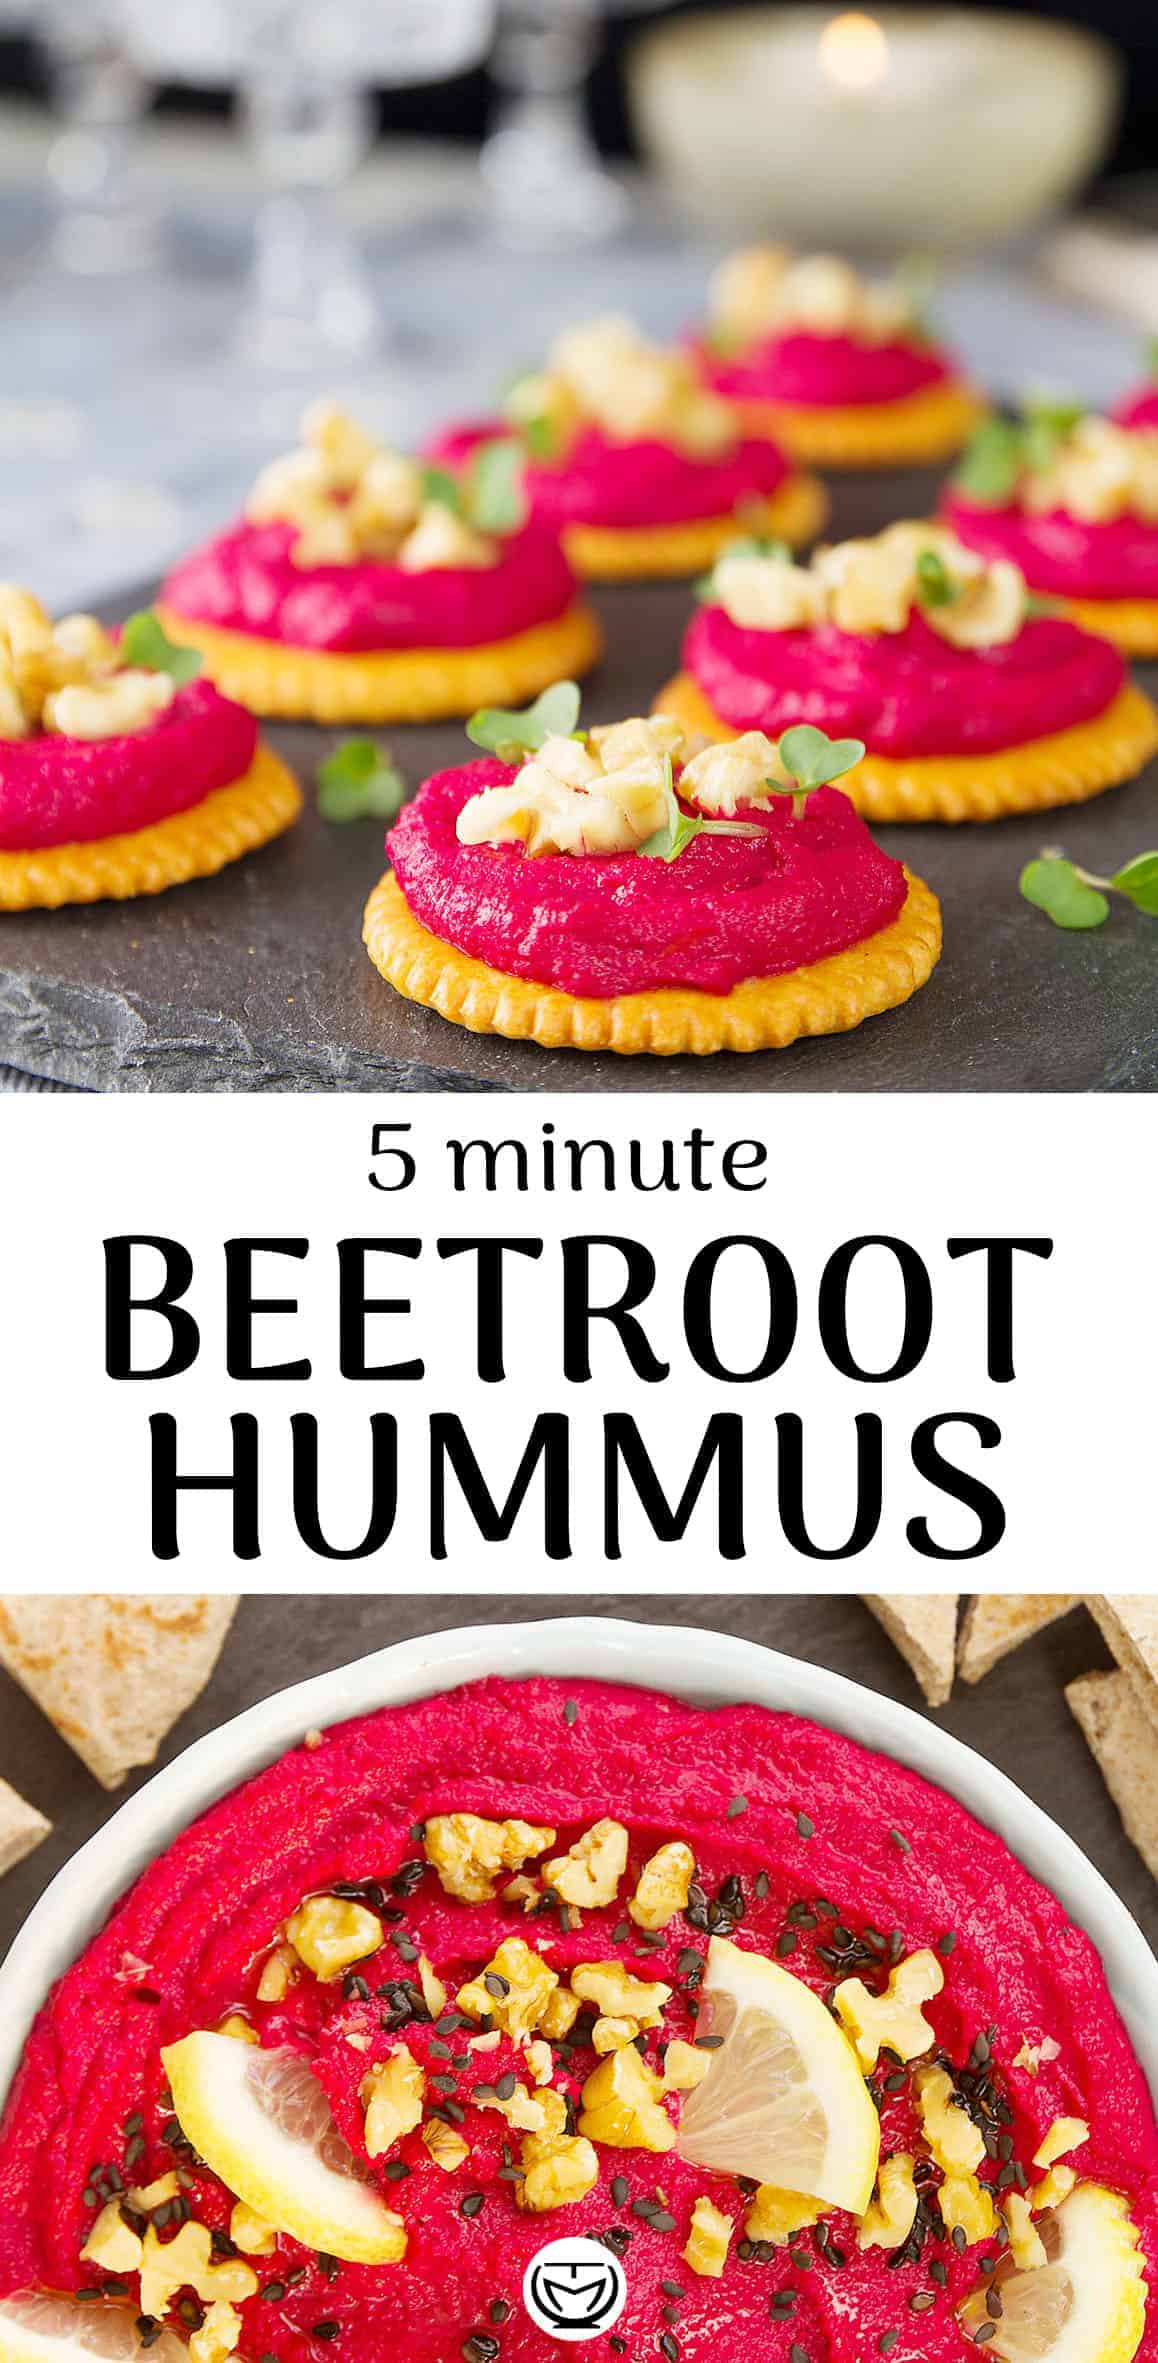 Delicious vegan beetroot hummus perfect for your next dinner party!